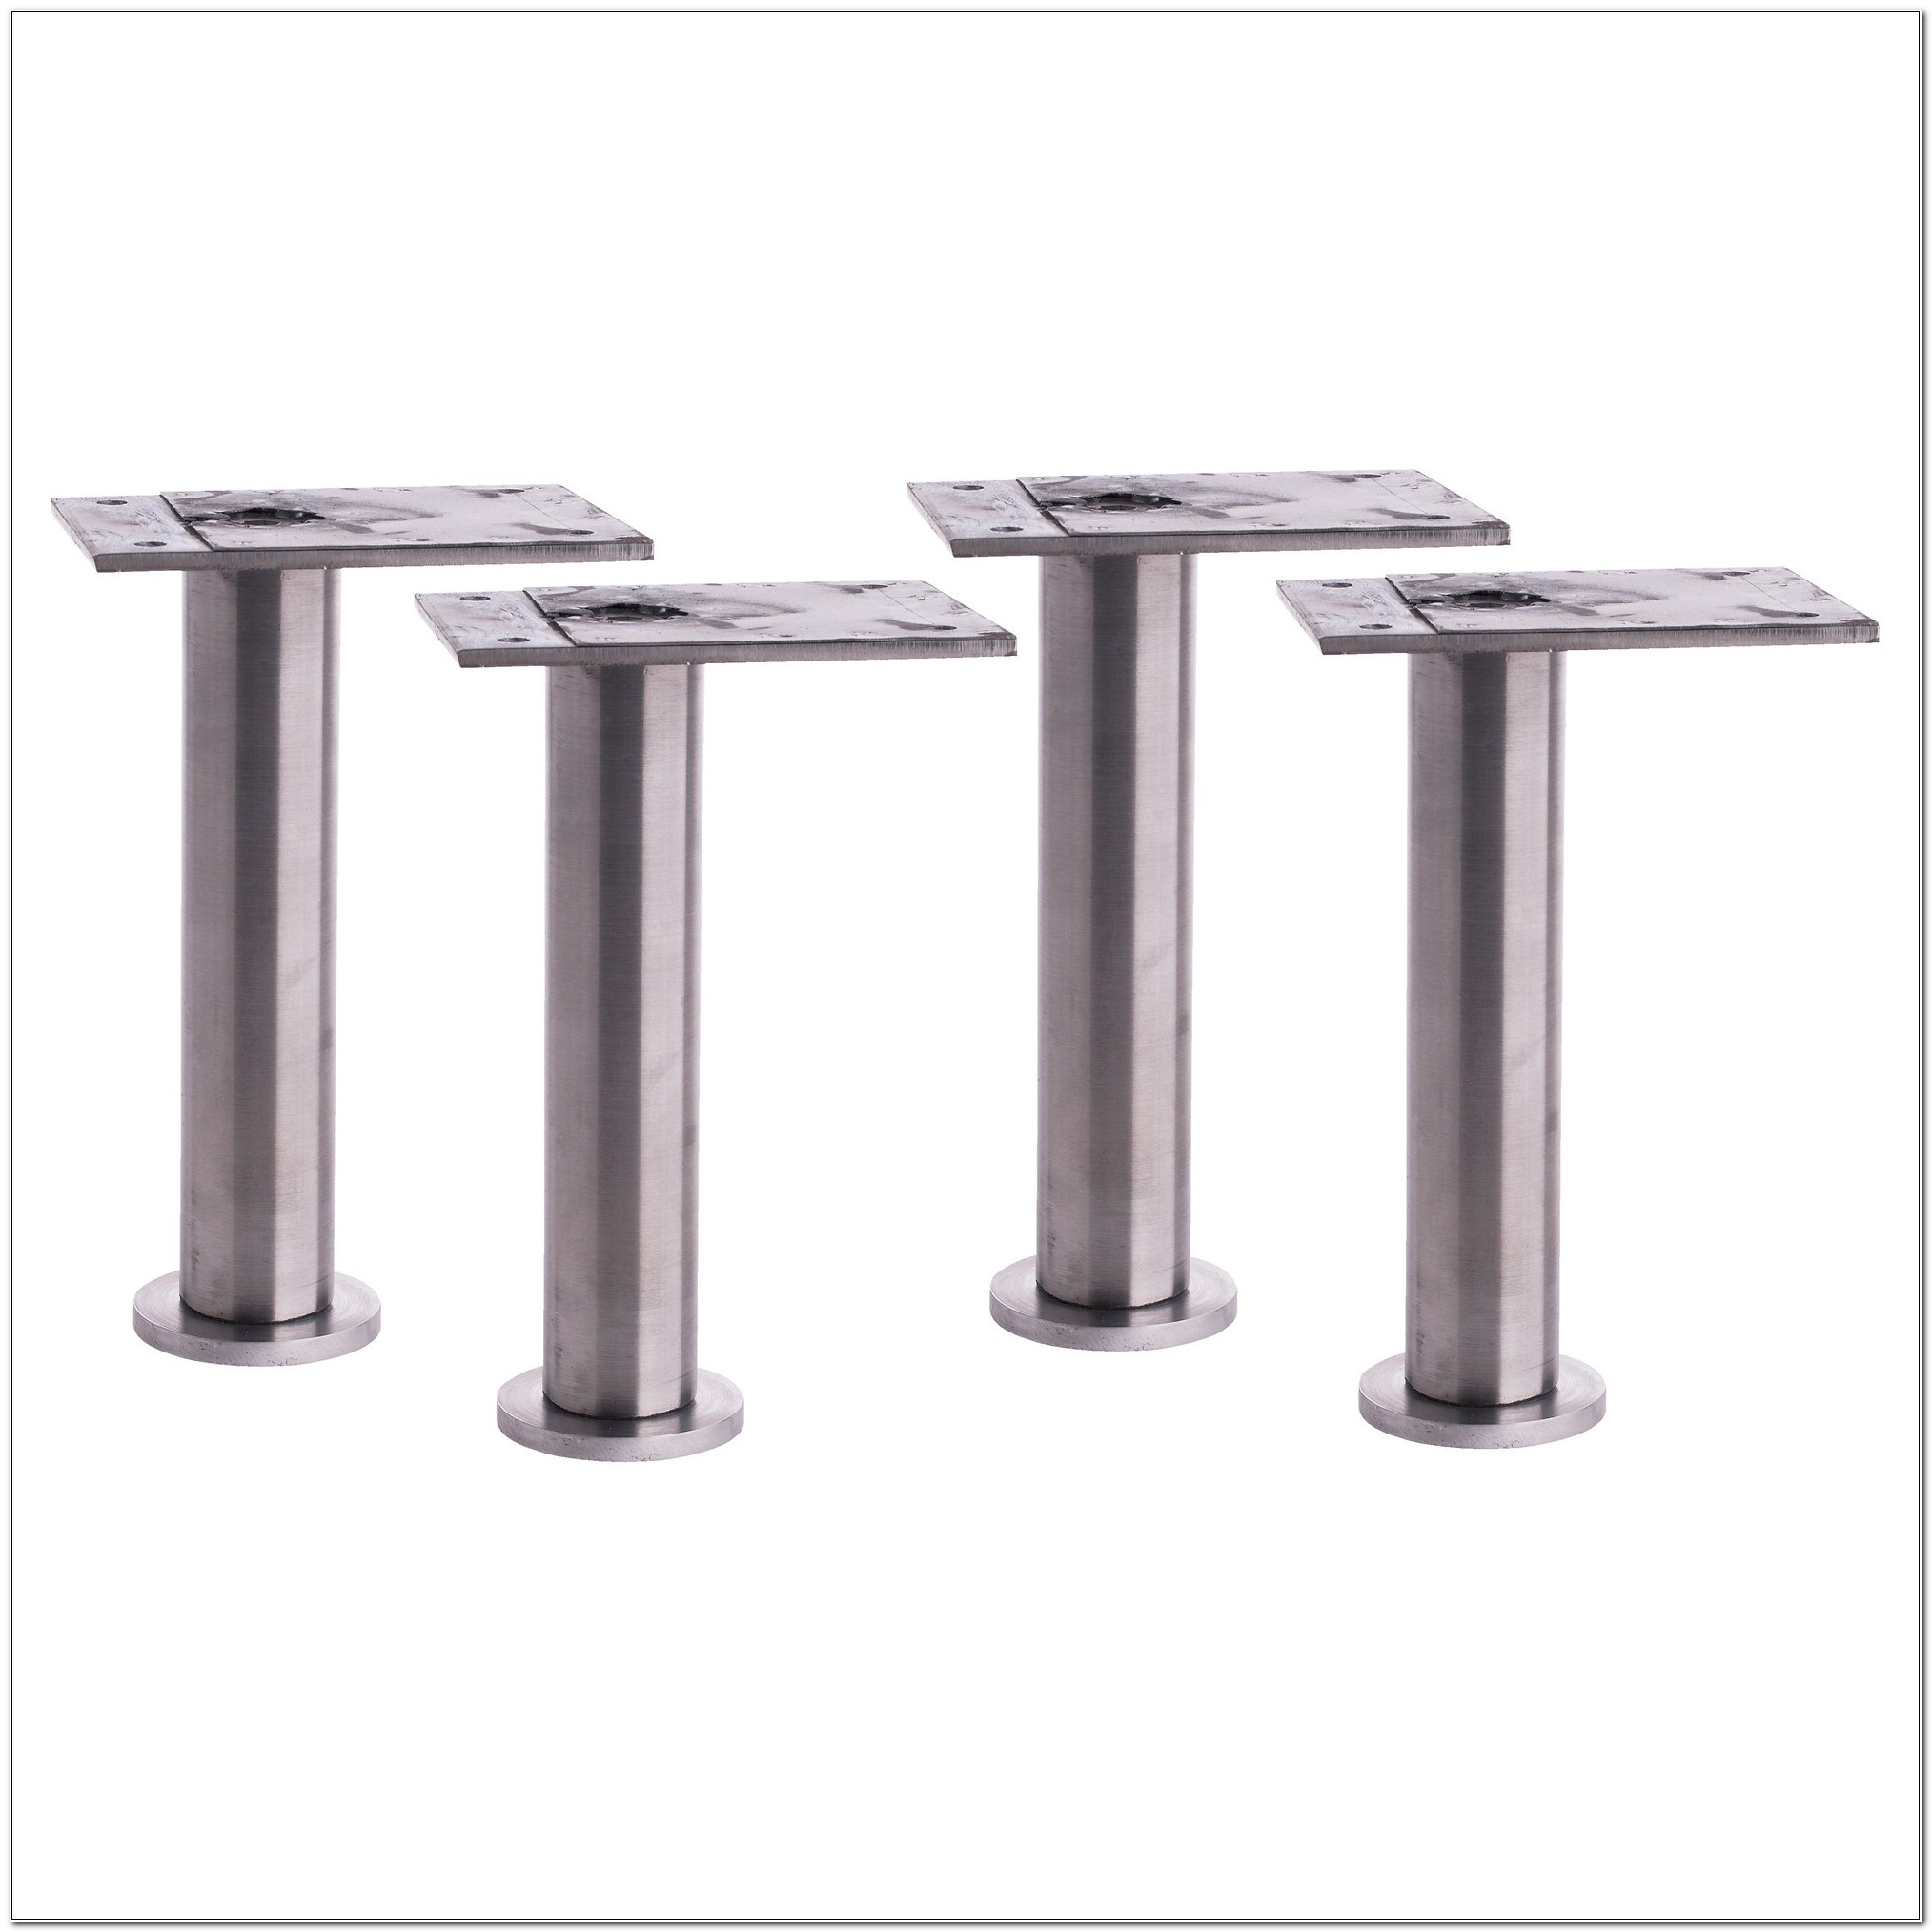 Stainless Steel Cabinet Legs Uk